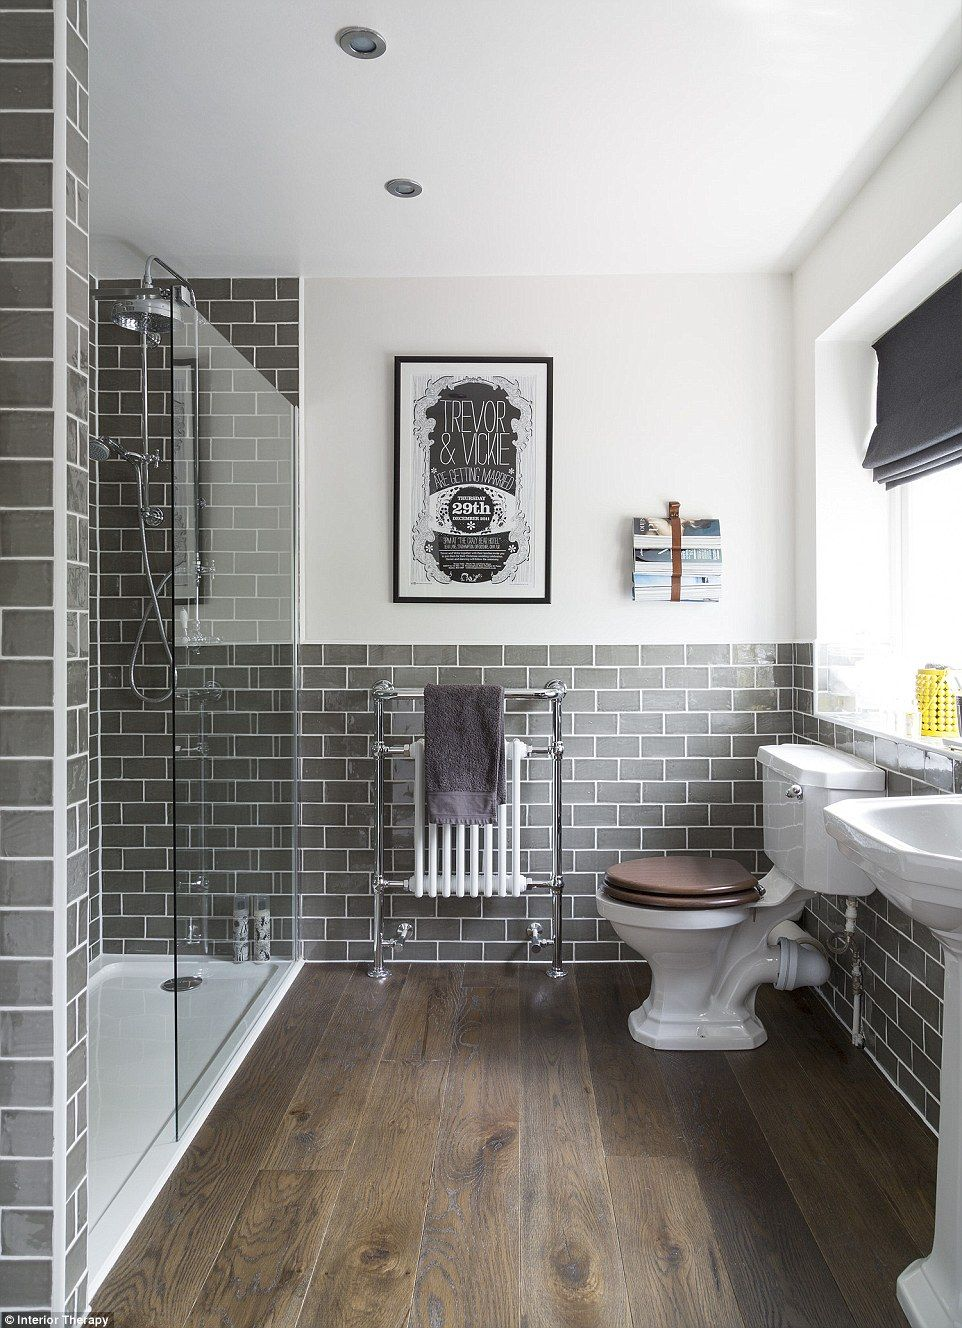 Best Kitchen Gallery: Britain's Most Coveted Interiors Are Revealed Pinterest Grey of Grey Bathroom Floor on rachelxblog.com